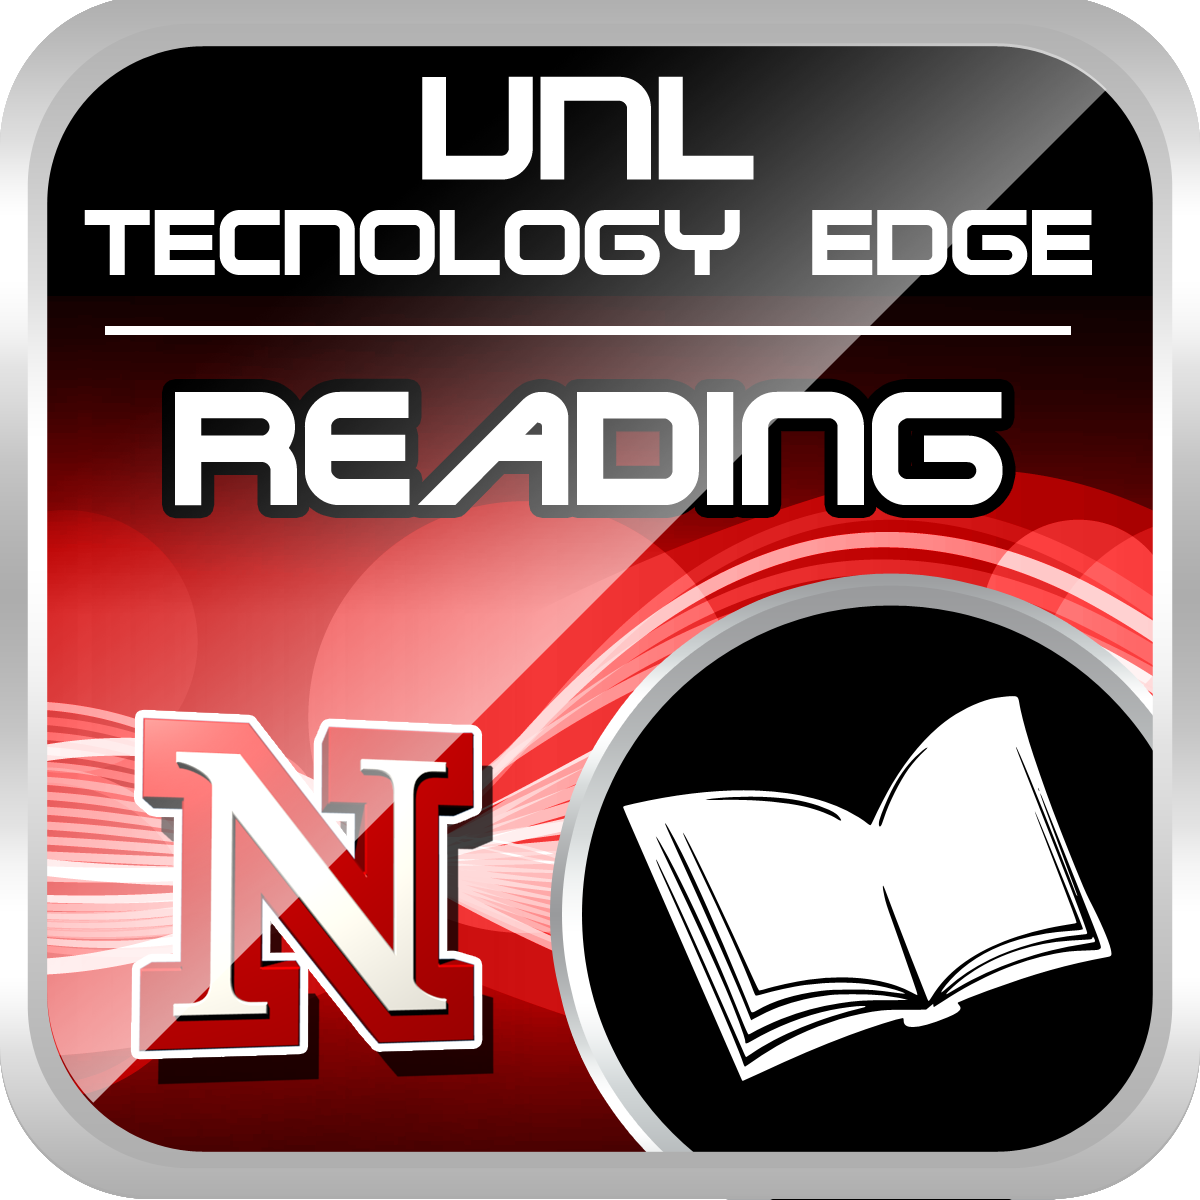 Tech EDGE - Reading Image